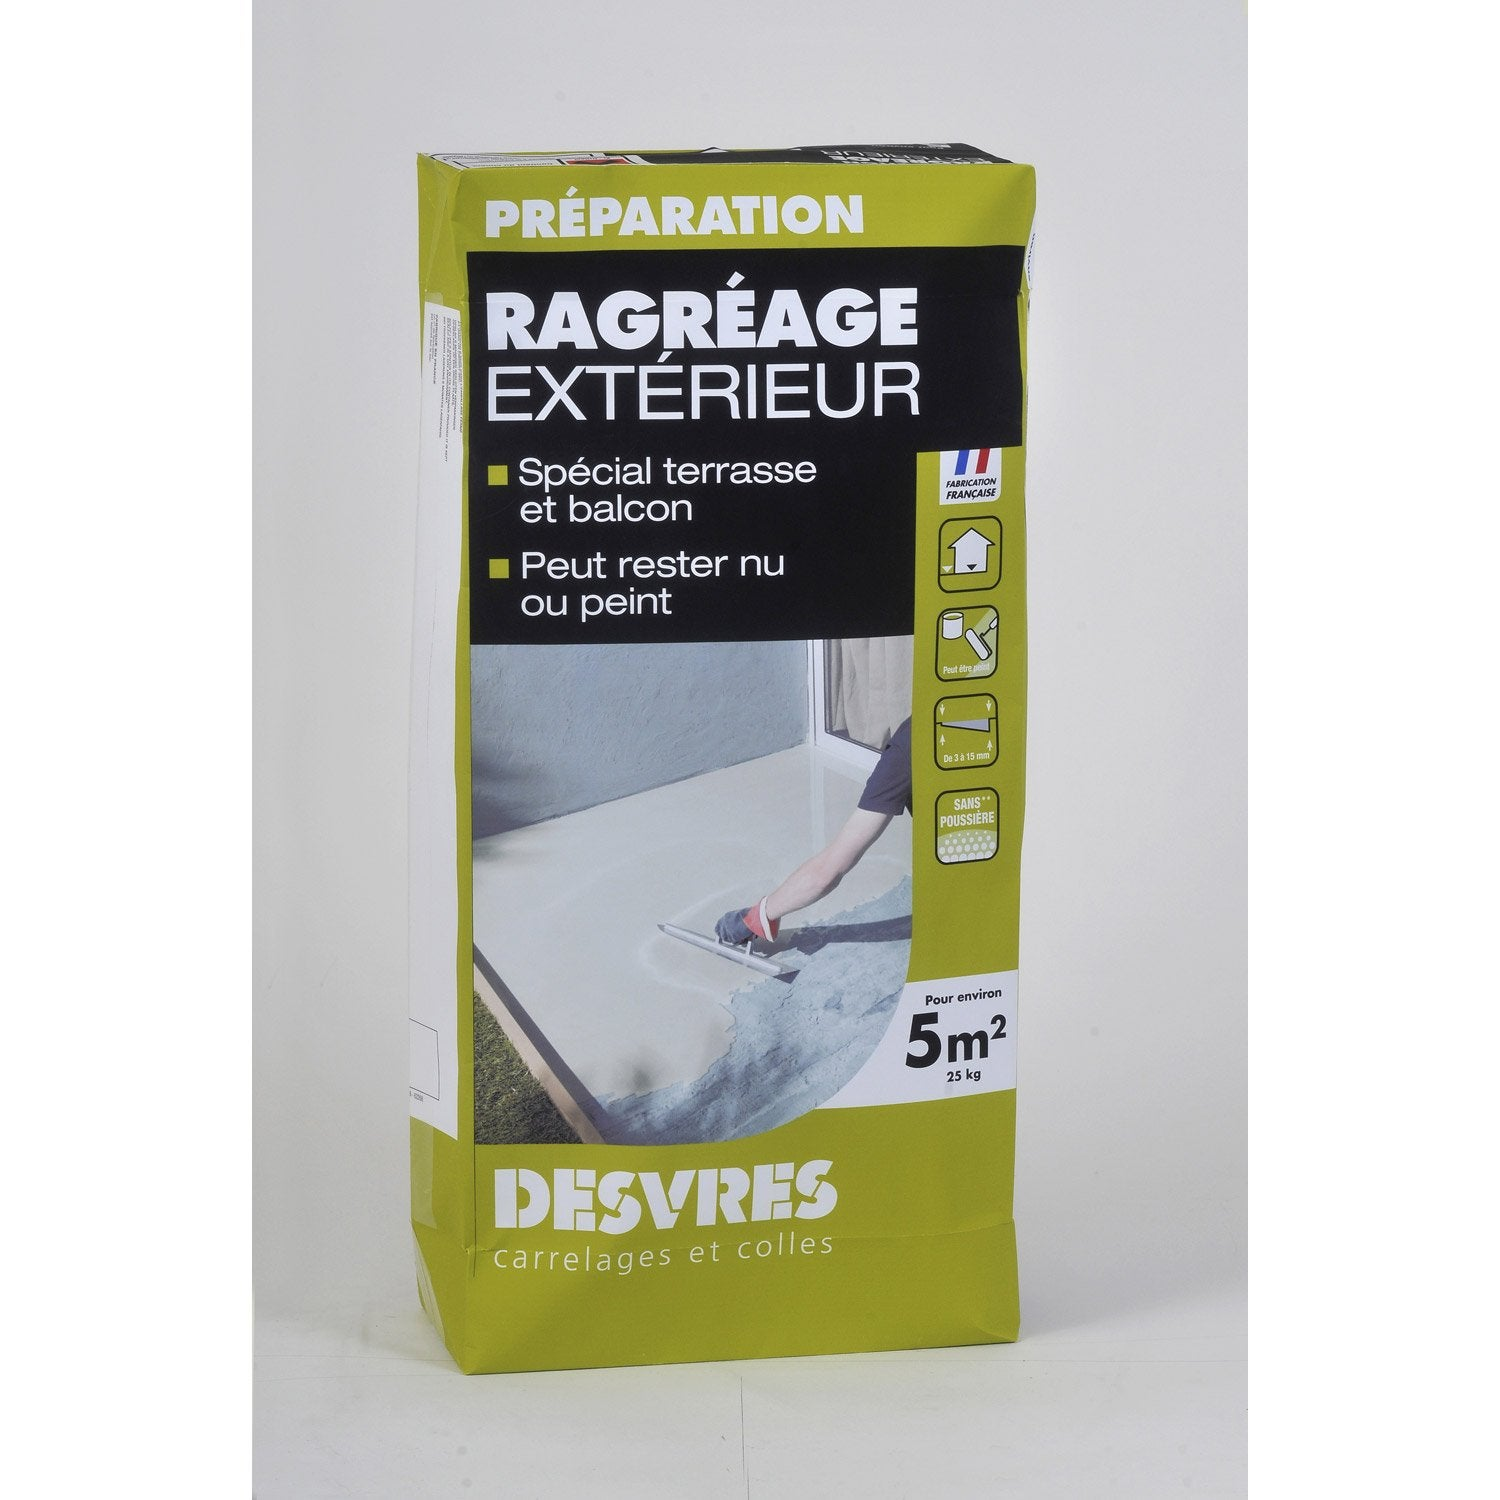 Leroy merlin ragreage maison design for Ragreage mural exterieur